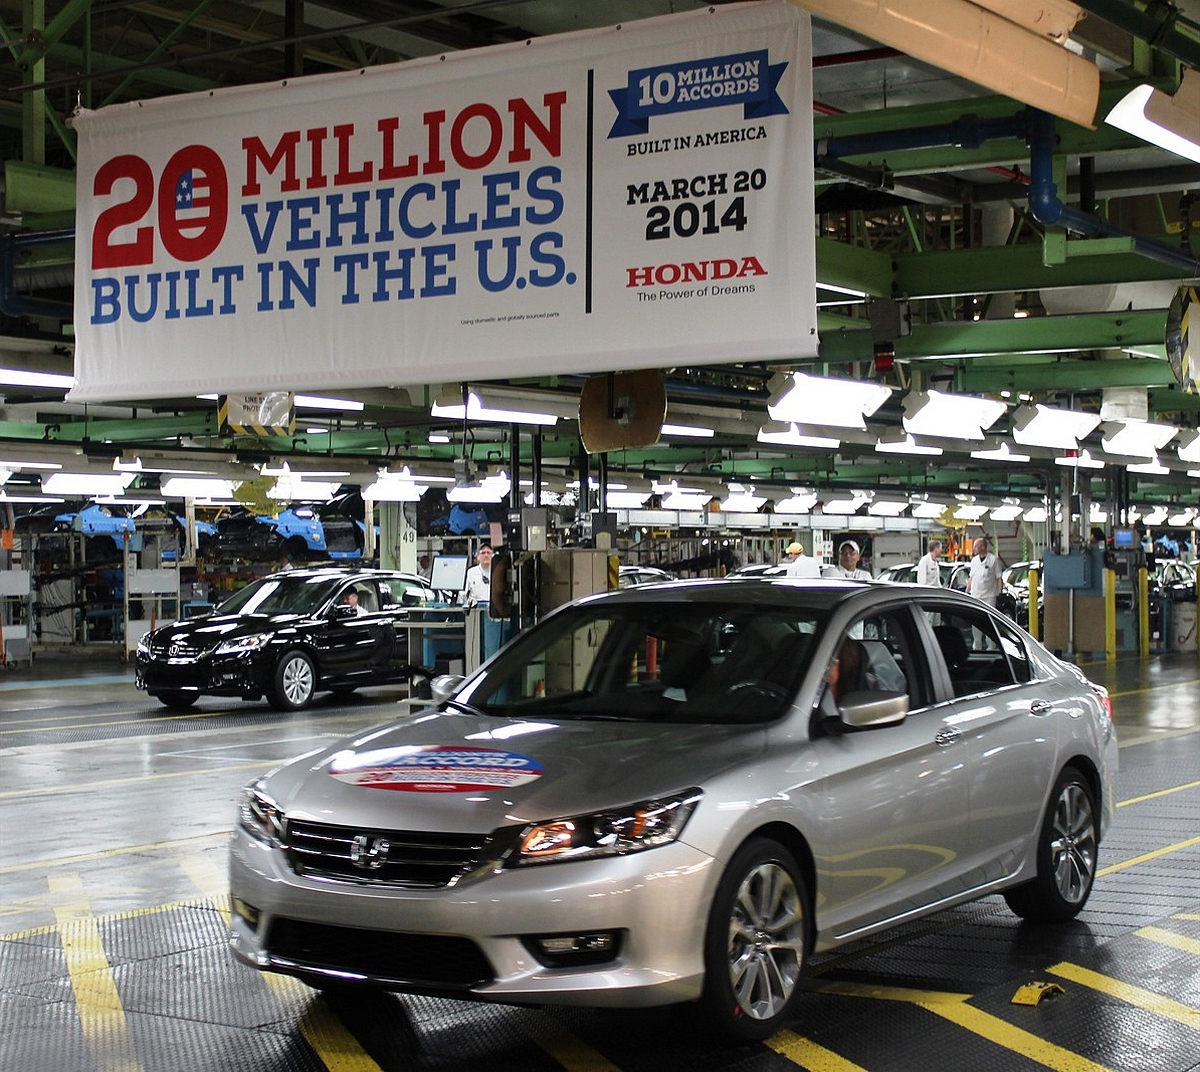 Honda Celebrates 20 Millionth Automobile Built in the U